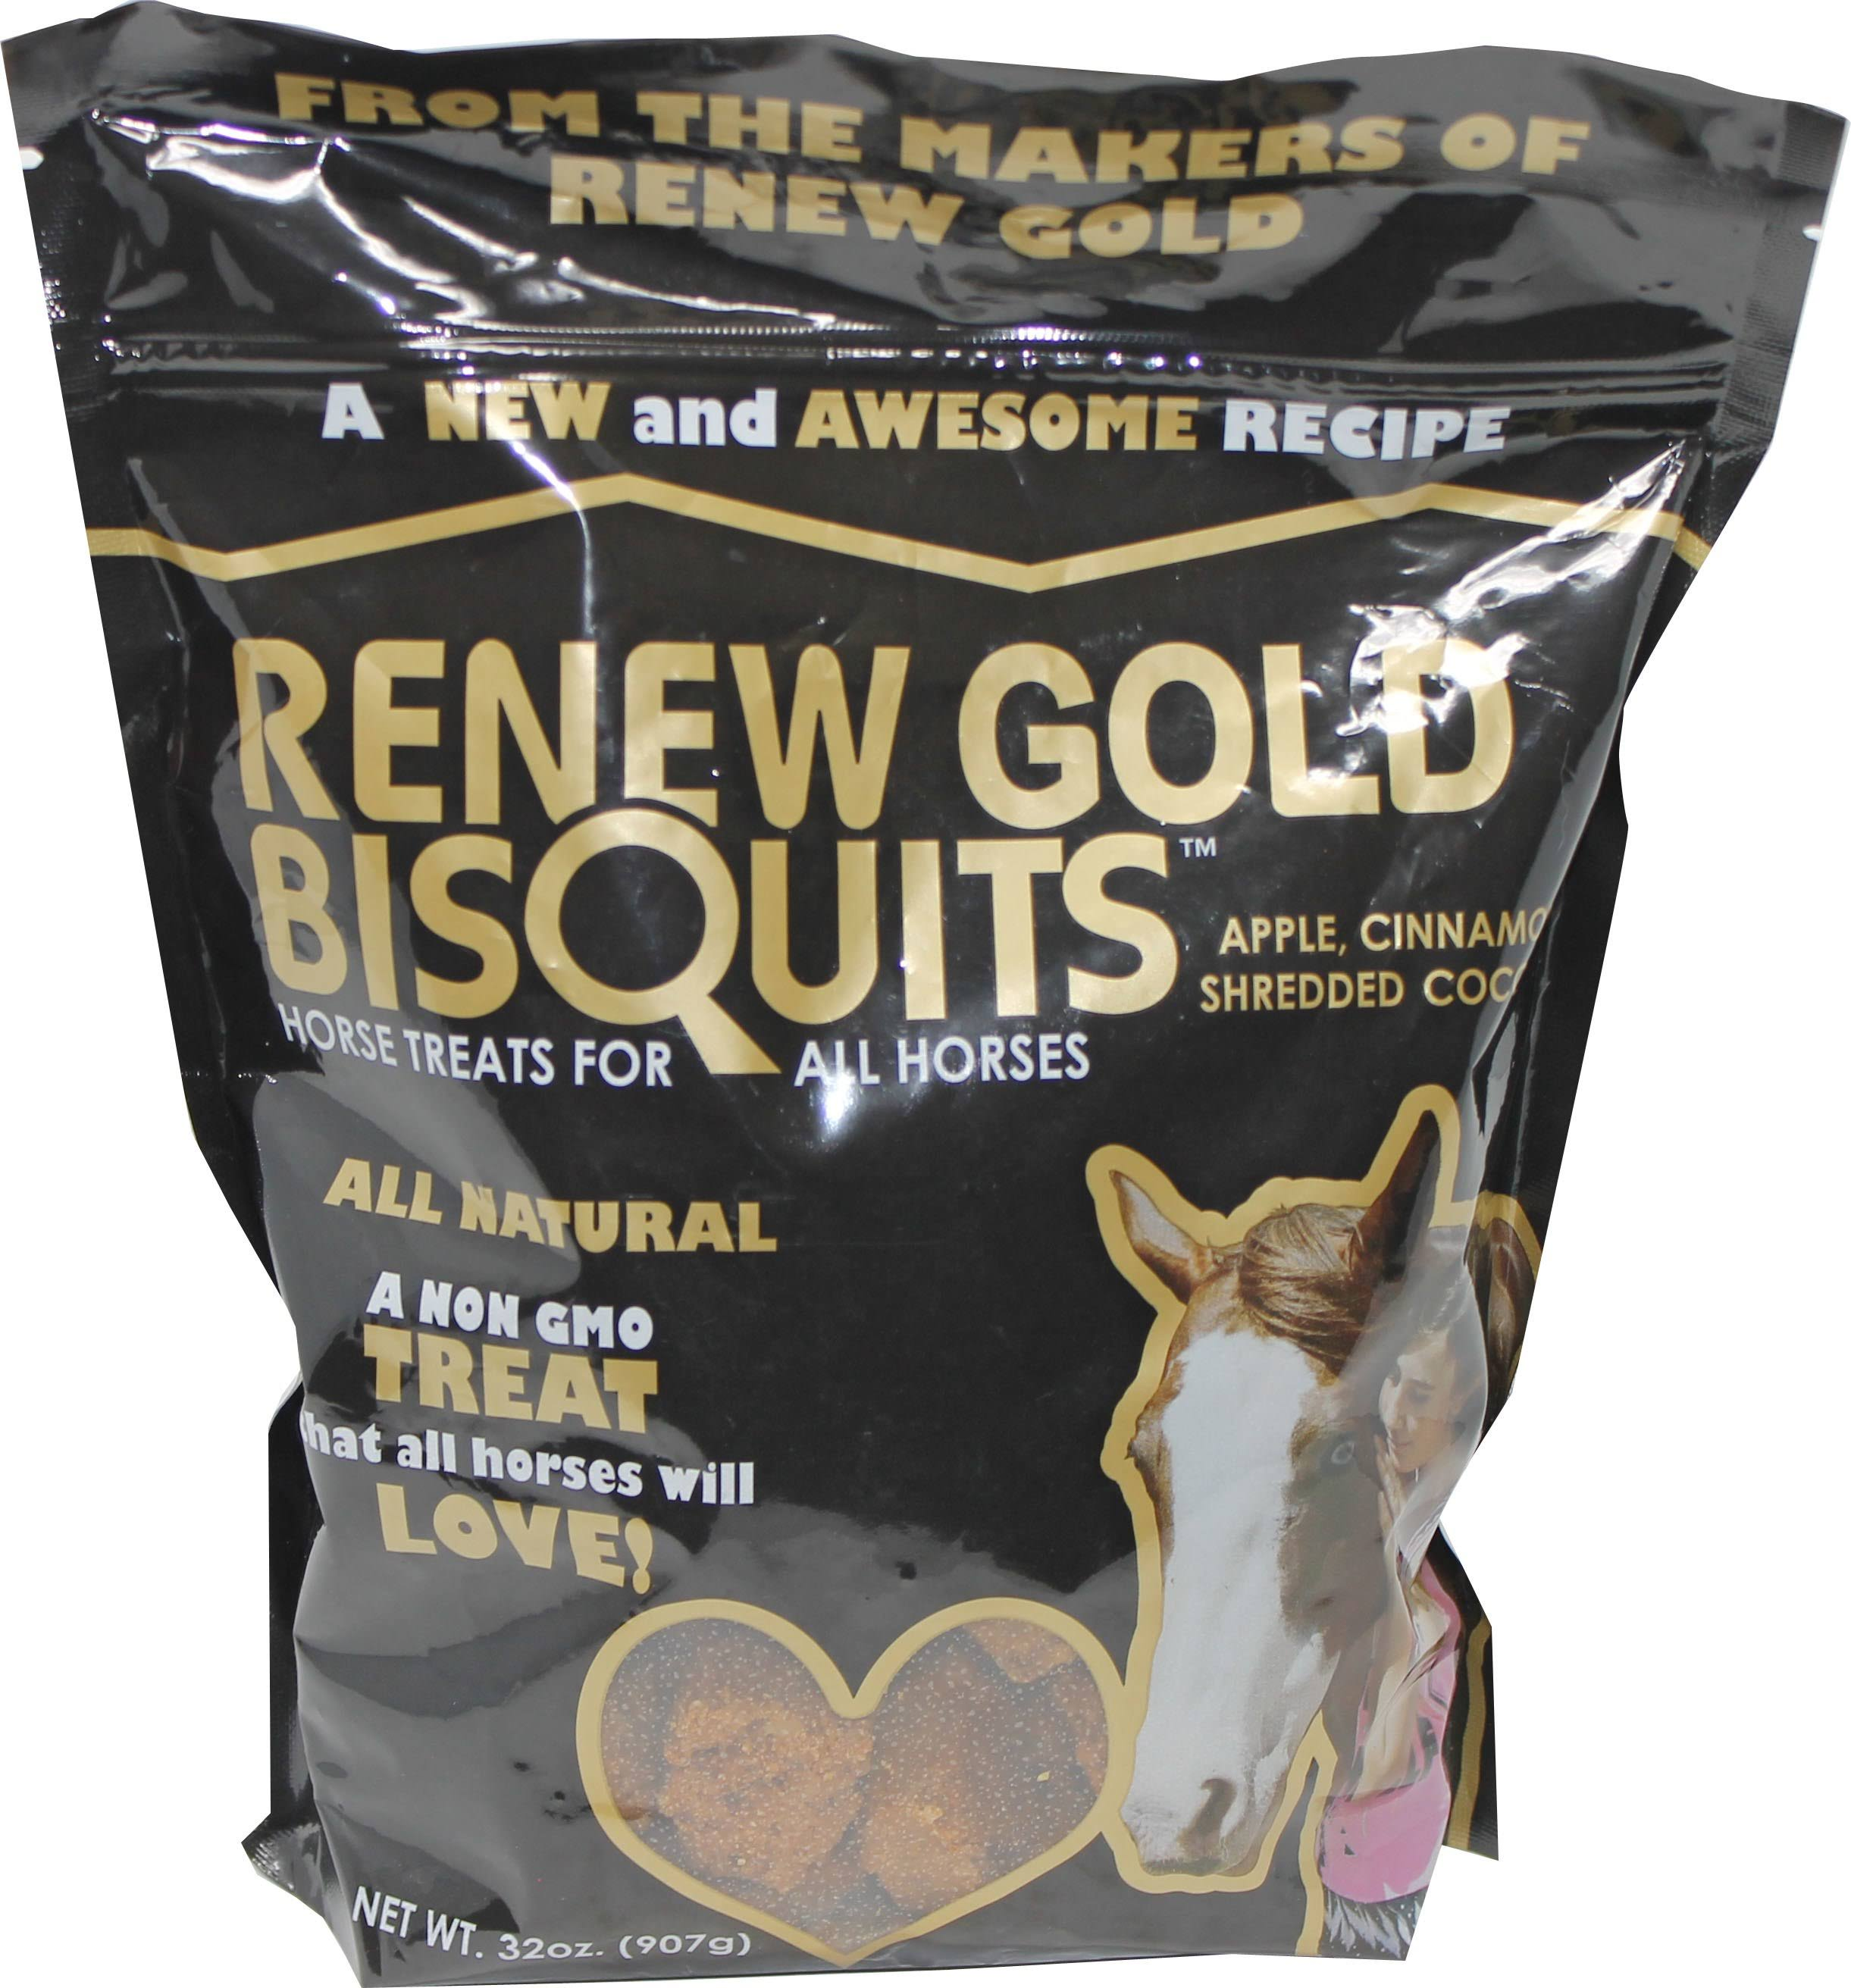 Manna Pro-equine 1030244 2 lbs Renew Gold Bisquits Horse Treats